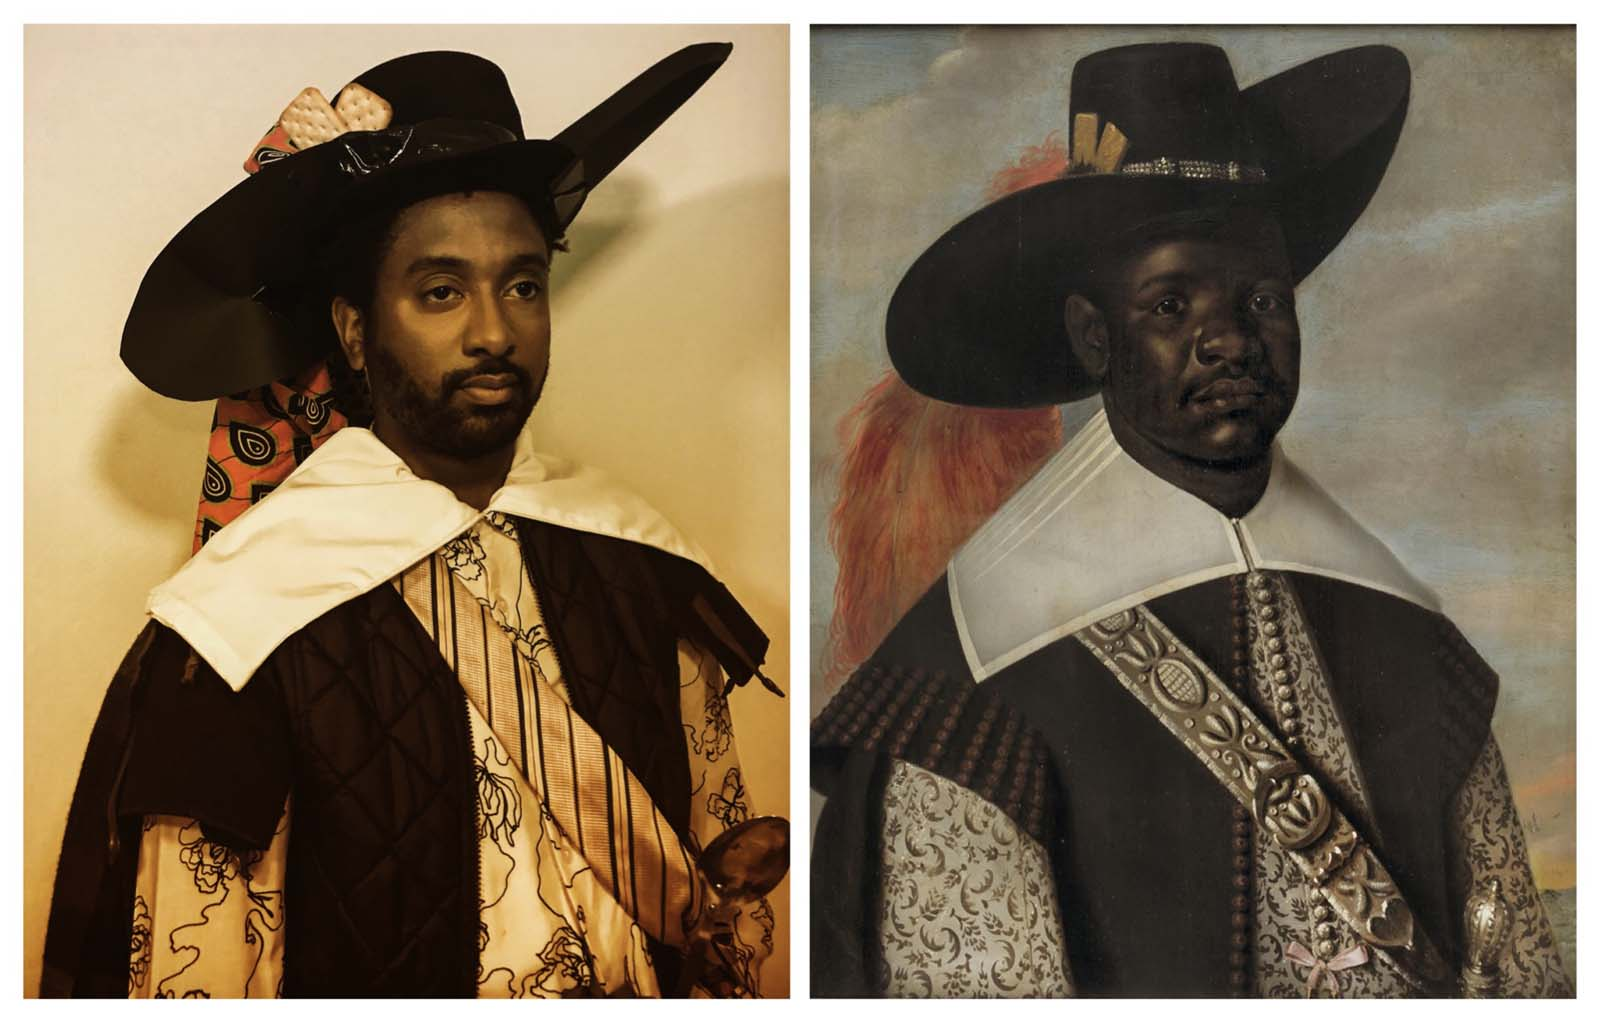 a painting of an African man in Cavalier style clothing with a photograph alongside of a man dressed in the same way